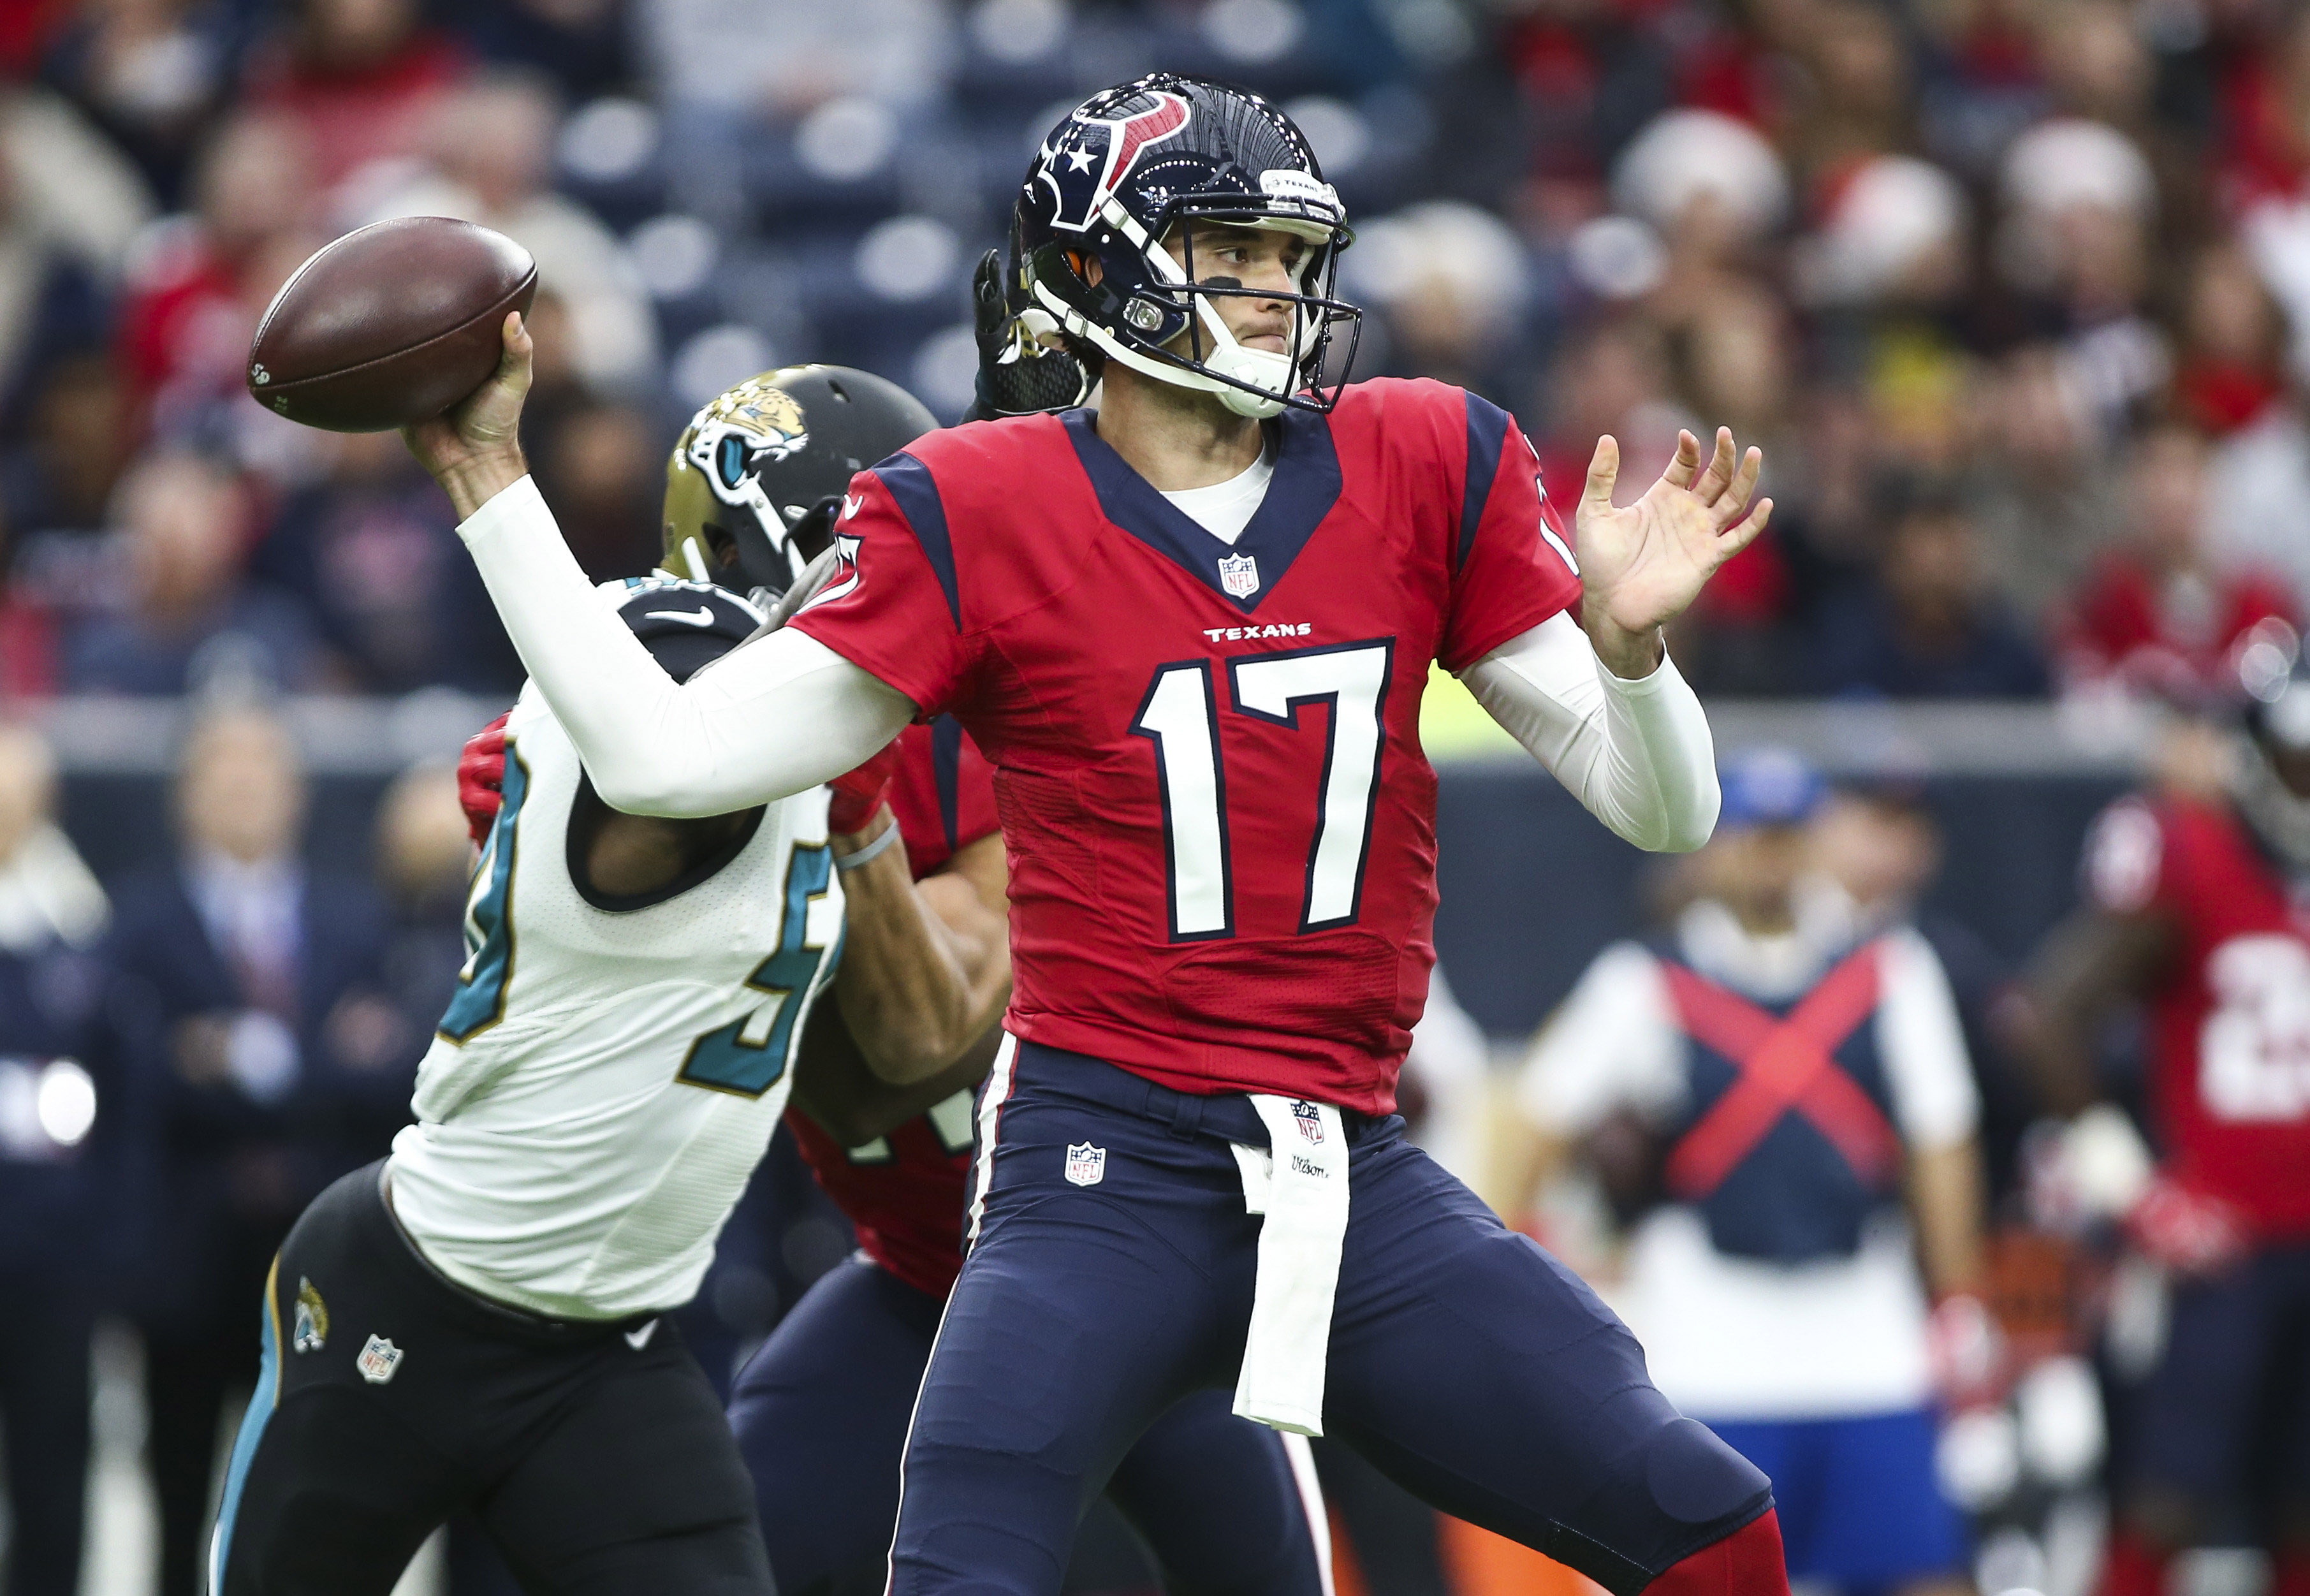 Texans have few options with Osweiler | kvue.com